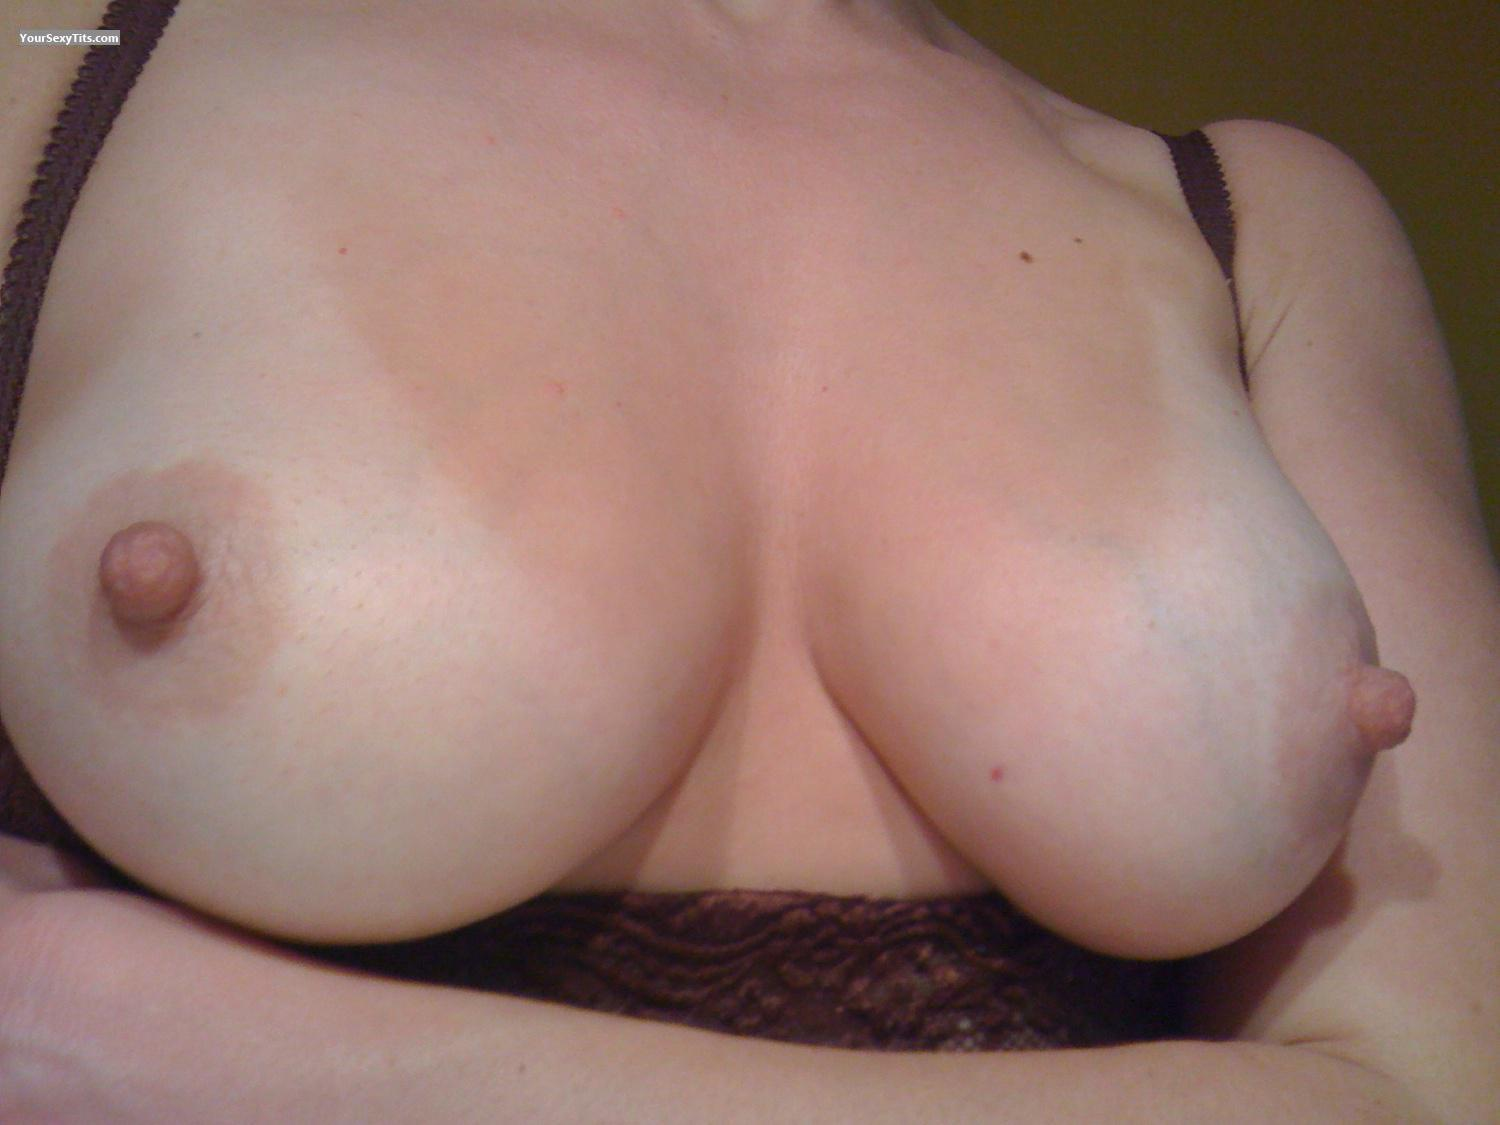 My Medium Tits Selfie by LittleBabs